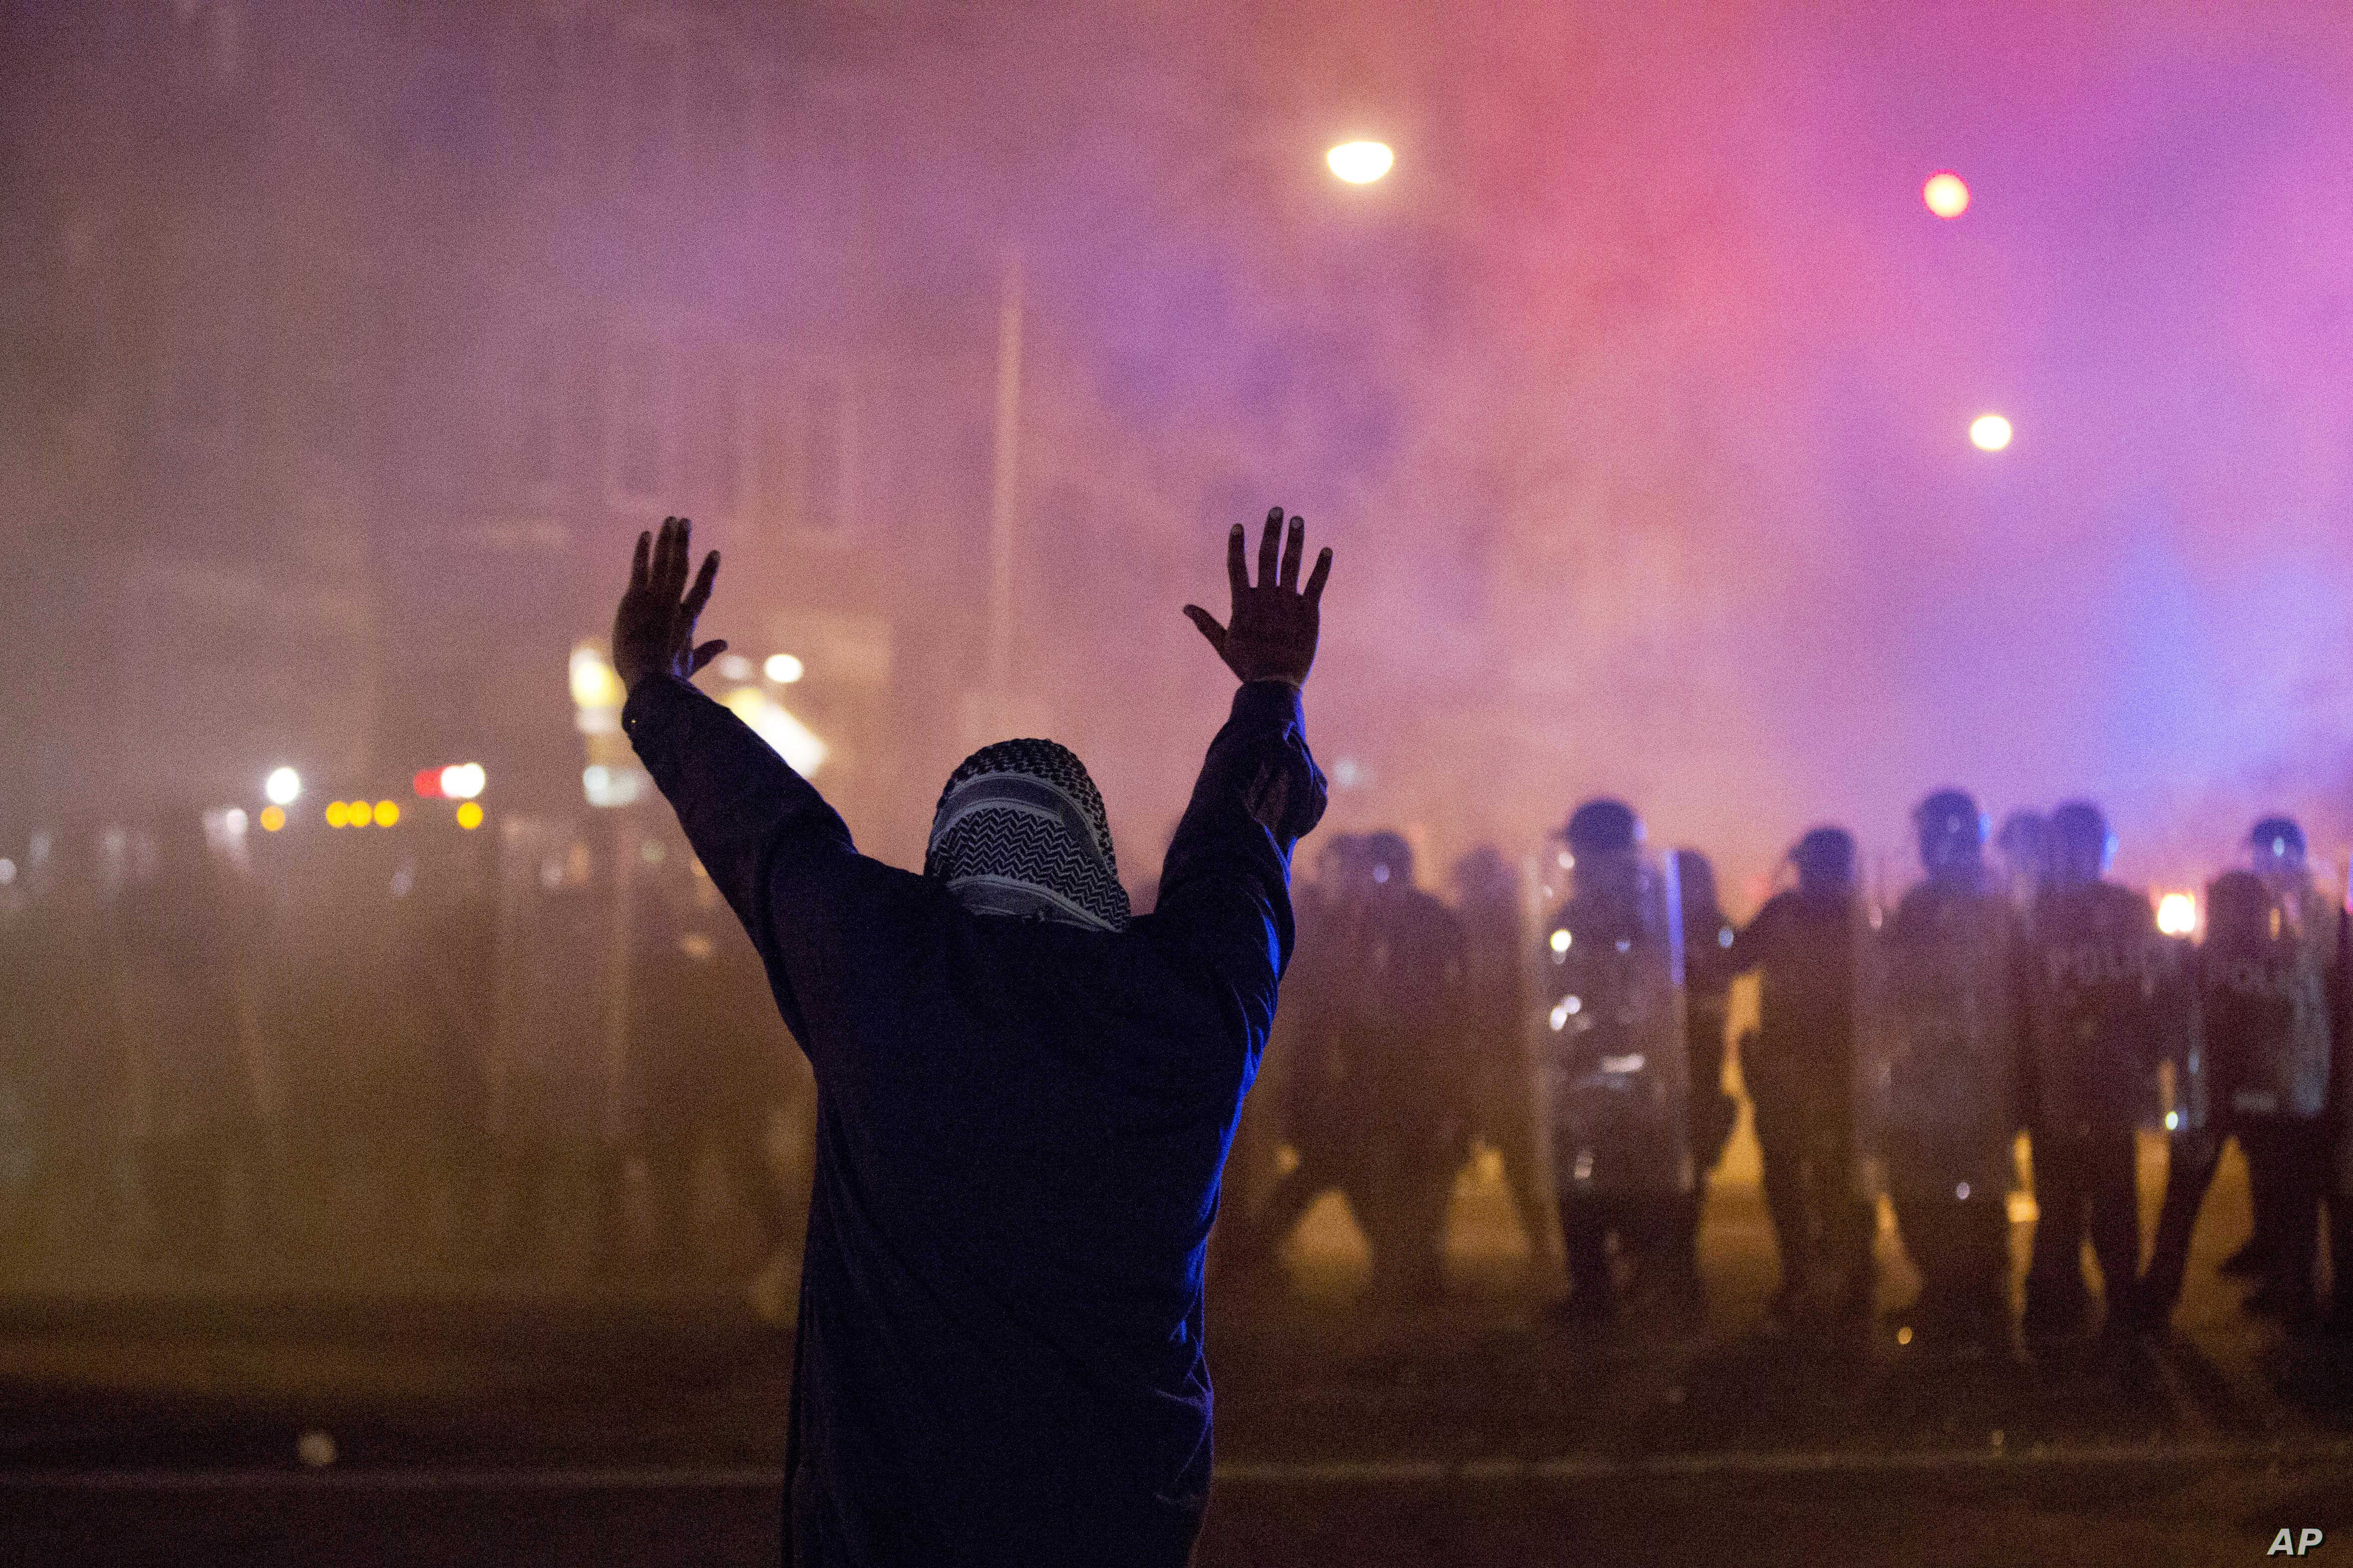 A protestor faces police enforcing a curfew April 28, 2015, in Baltimore. A line of police behind riot shields hurled smoke grenades and fired pepper balls at dozens of protesters to enforce a citywide curfew.